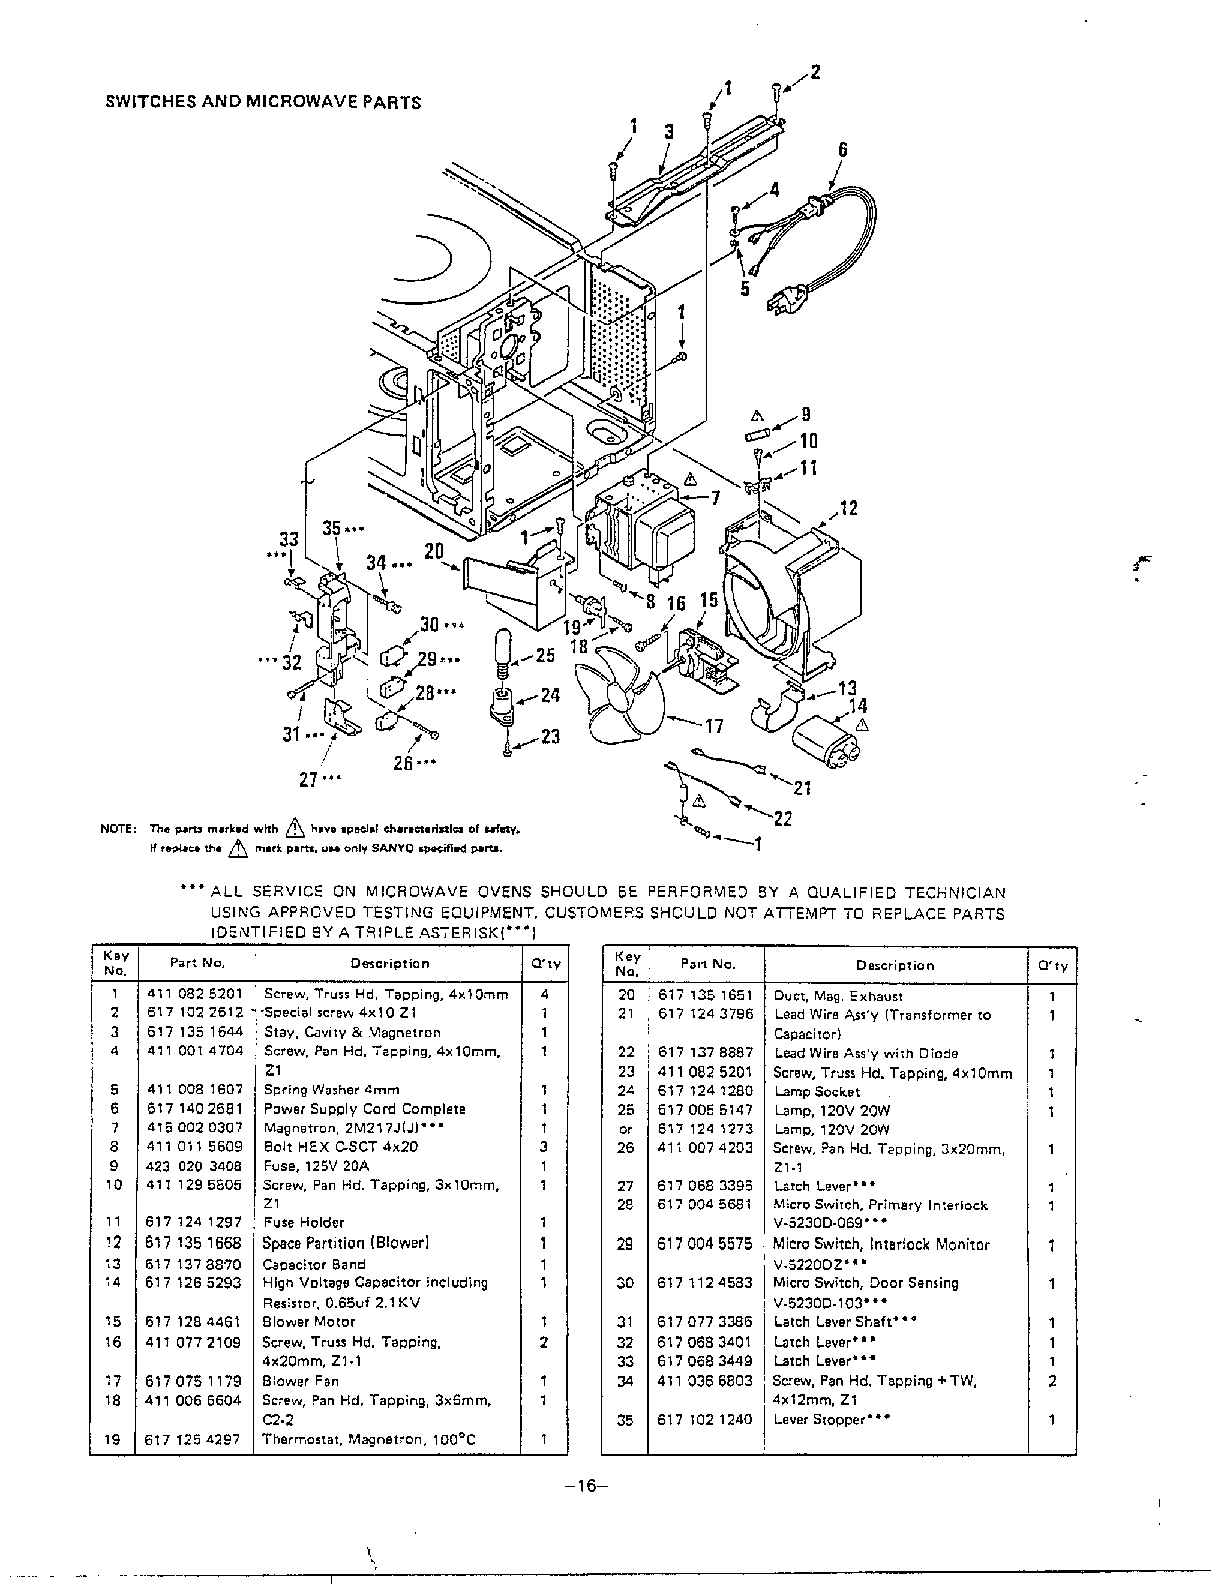 Circuit Board Troubleshooting Circuit Technology Wiring